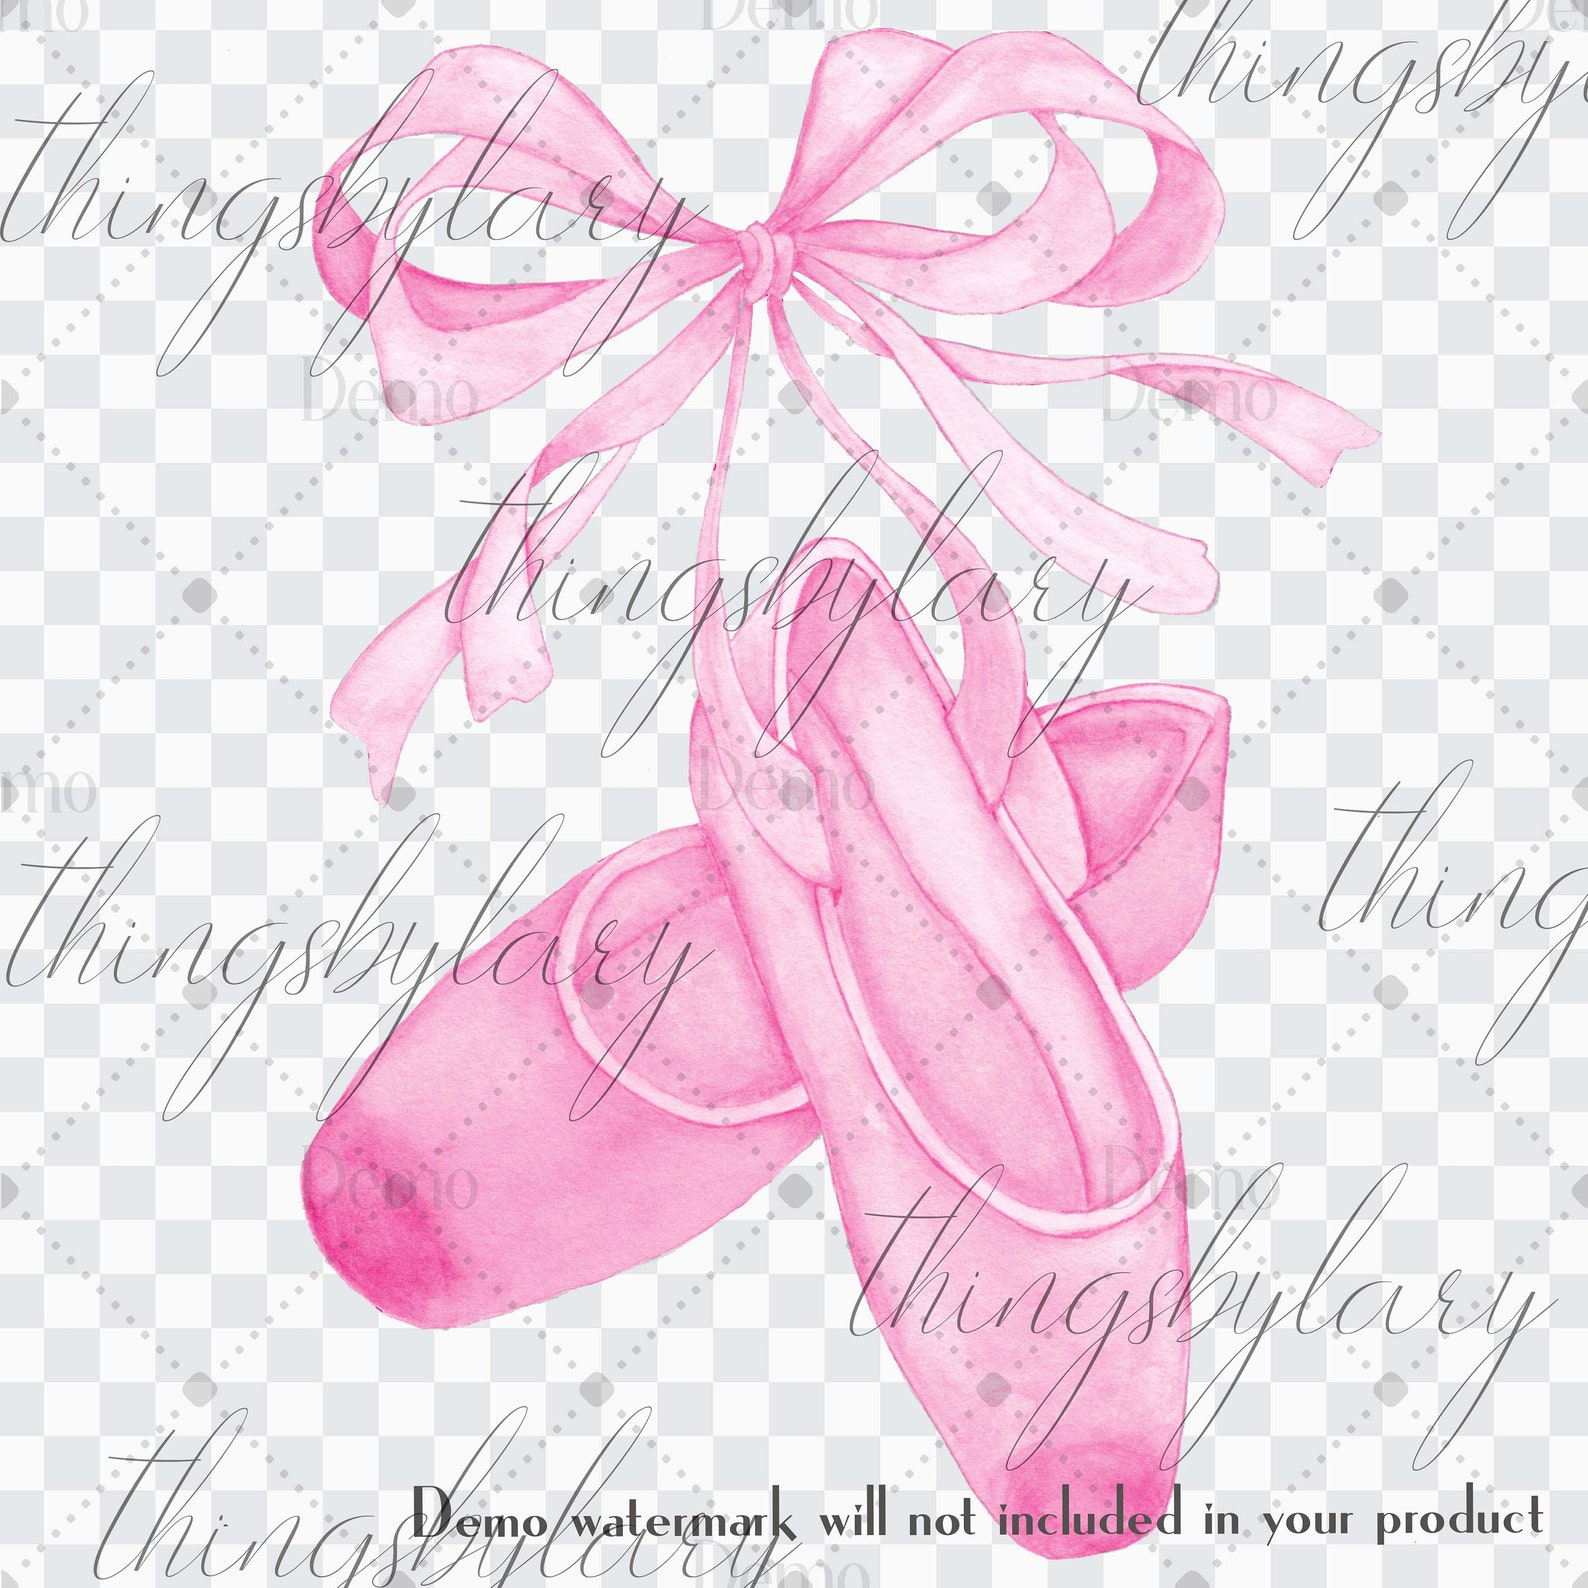 100 hand painted watercolor bow ballet shoes clip arts 300 dpi instant download commercial use transparent watercolor princess b